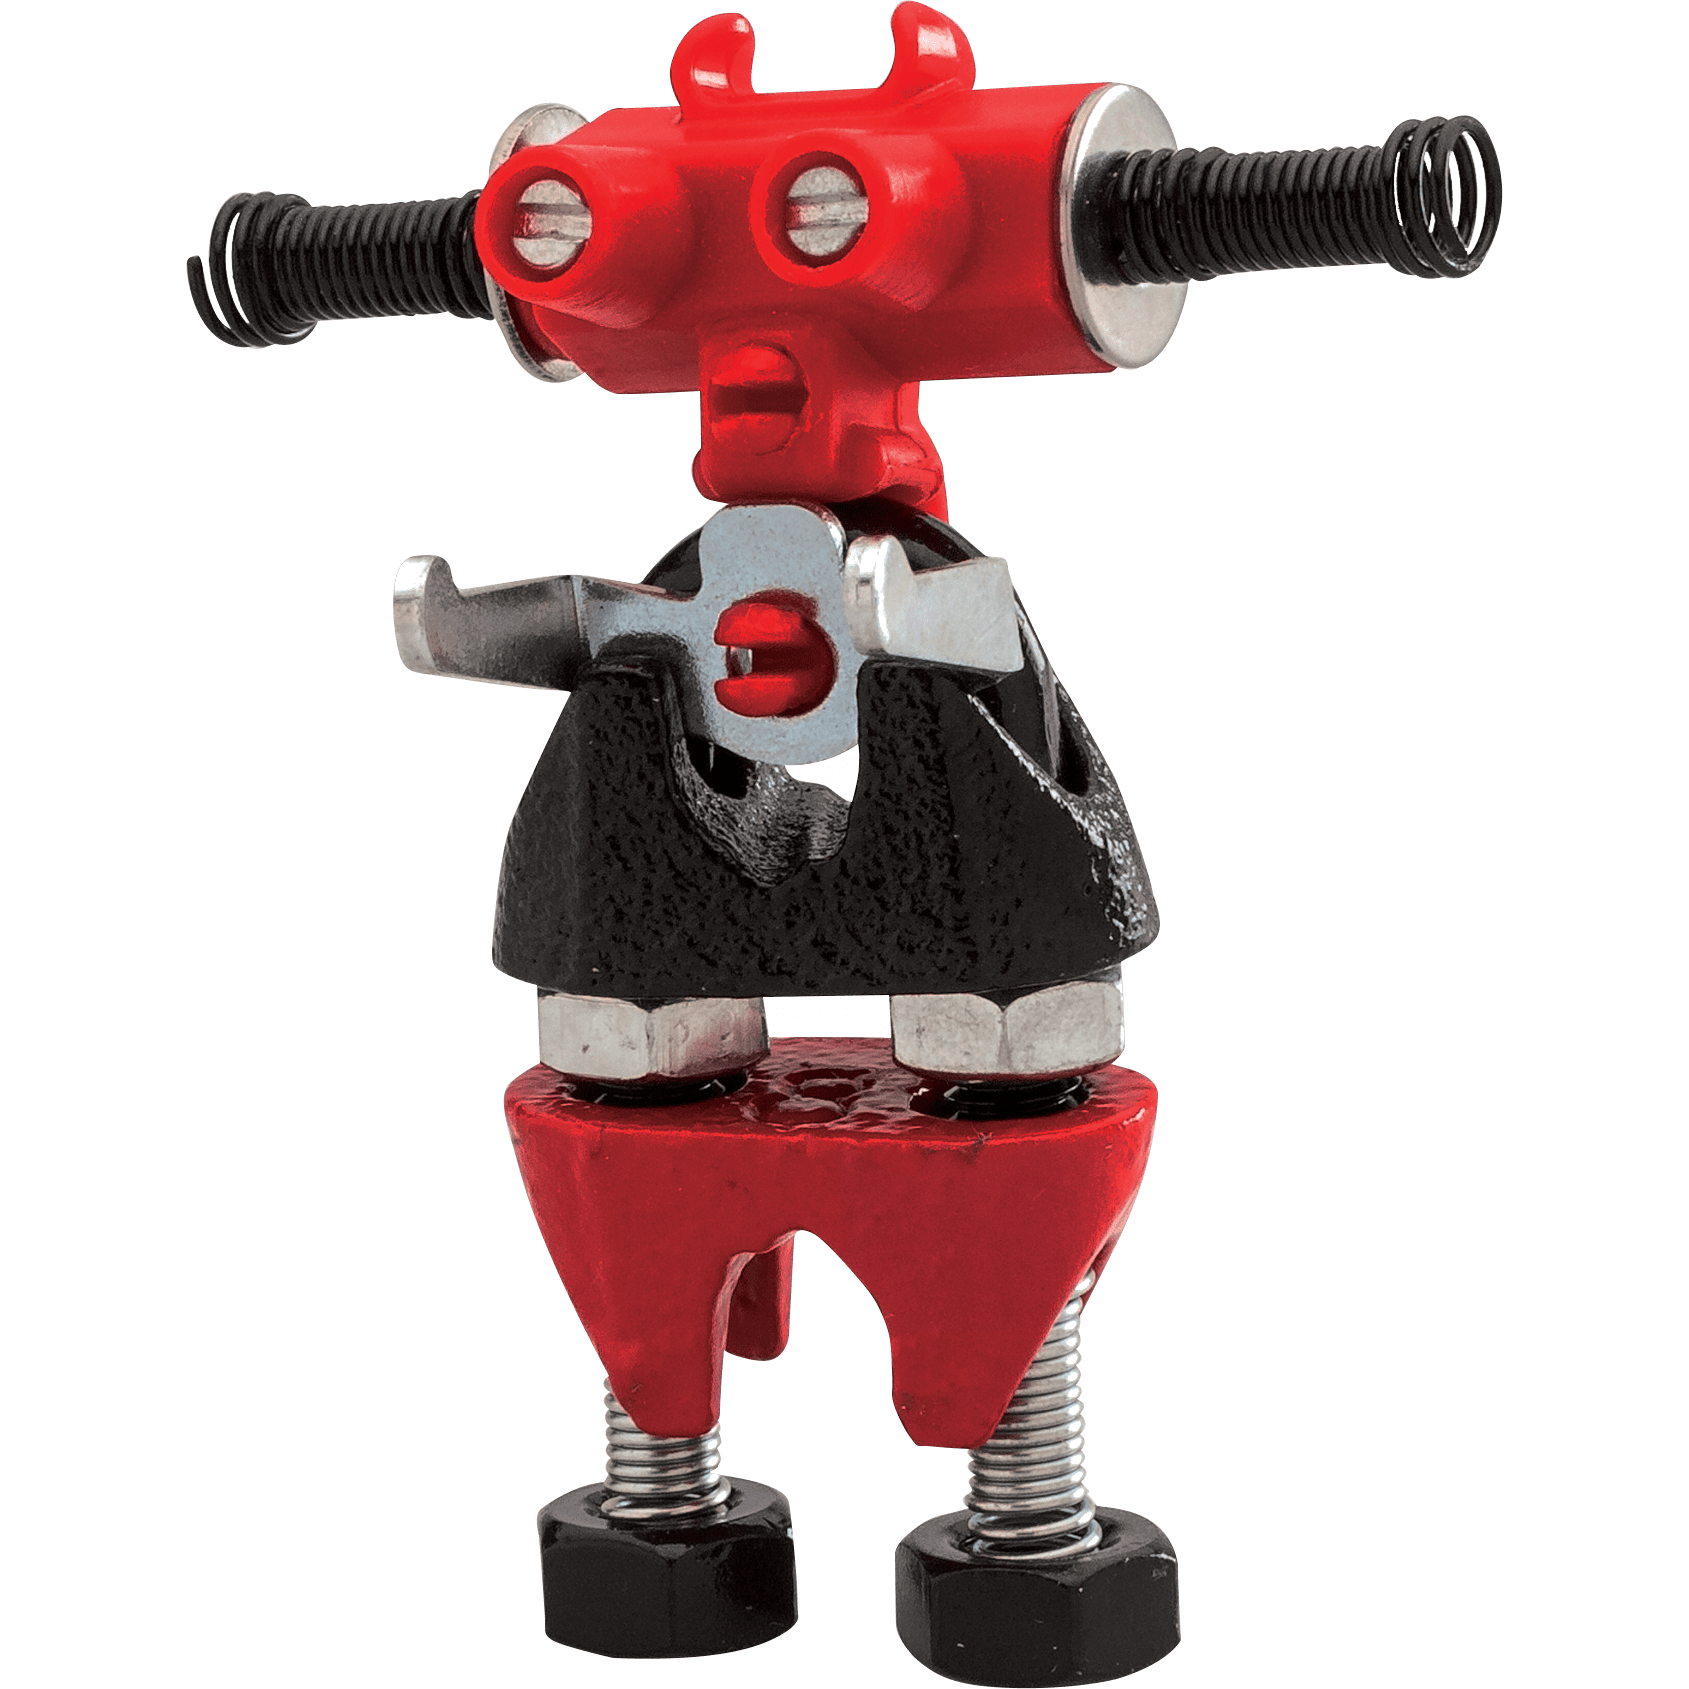 RED 3-in-1 Robot Kit from The OFFBITS